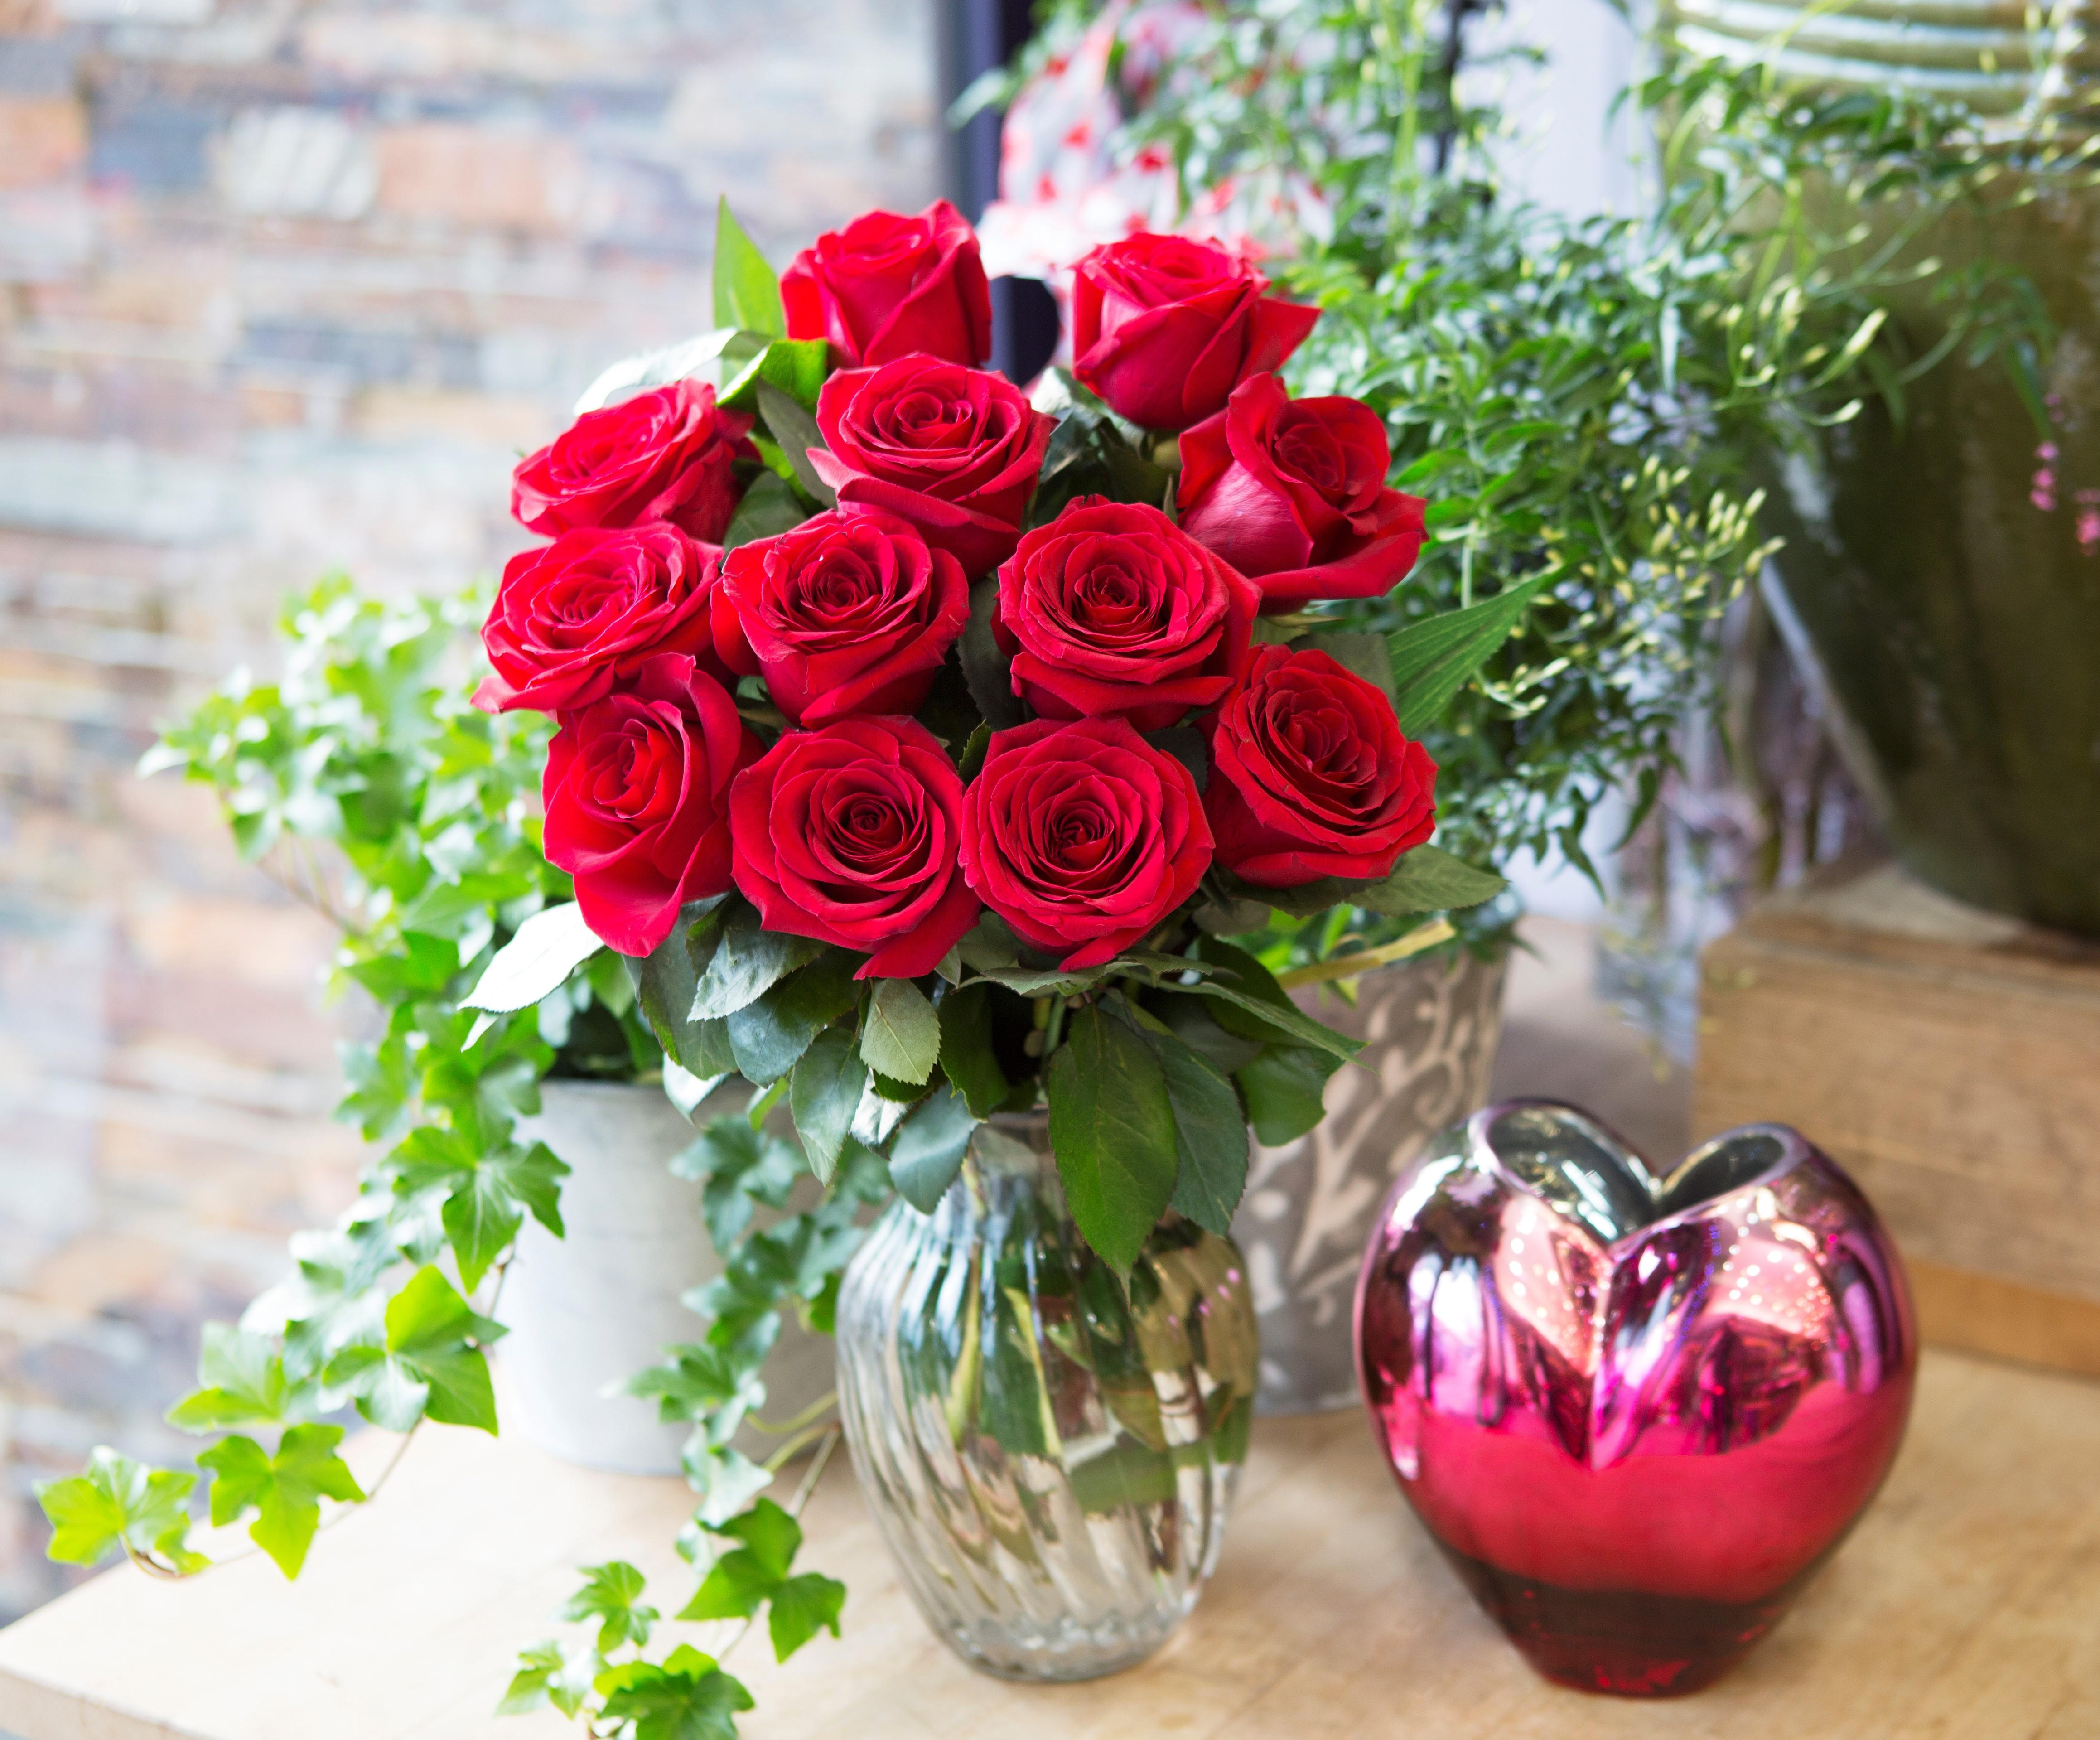 Amazon.com : KaBloom The Romantic Classic Red Rose Bouquet of 12 ...